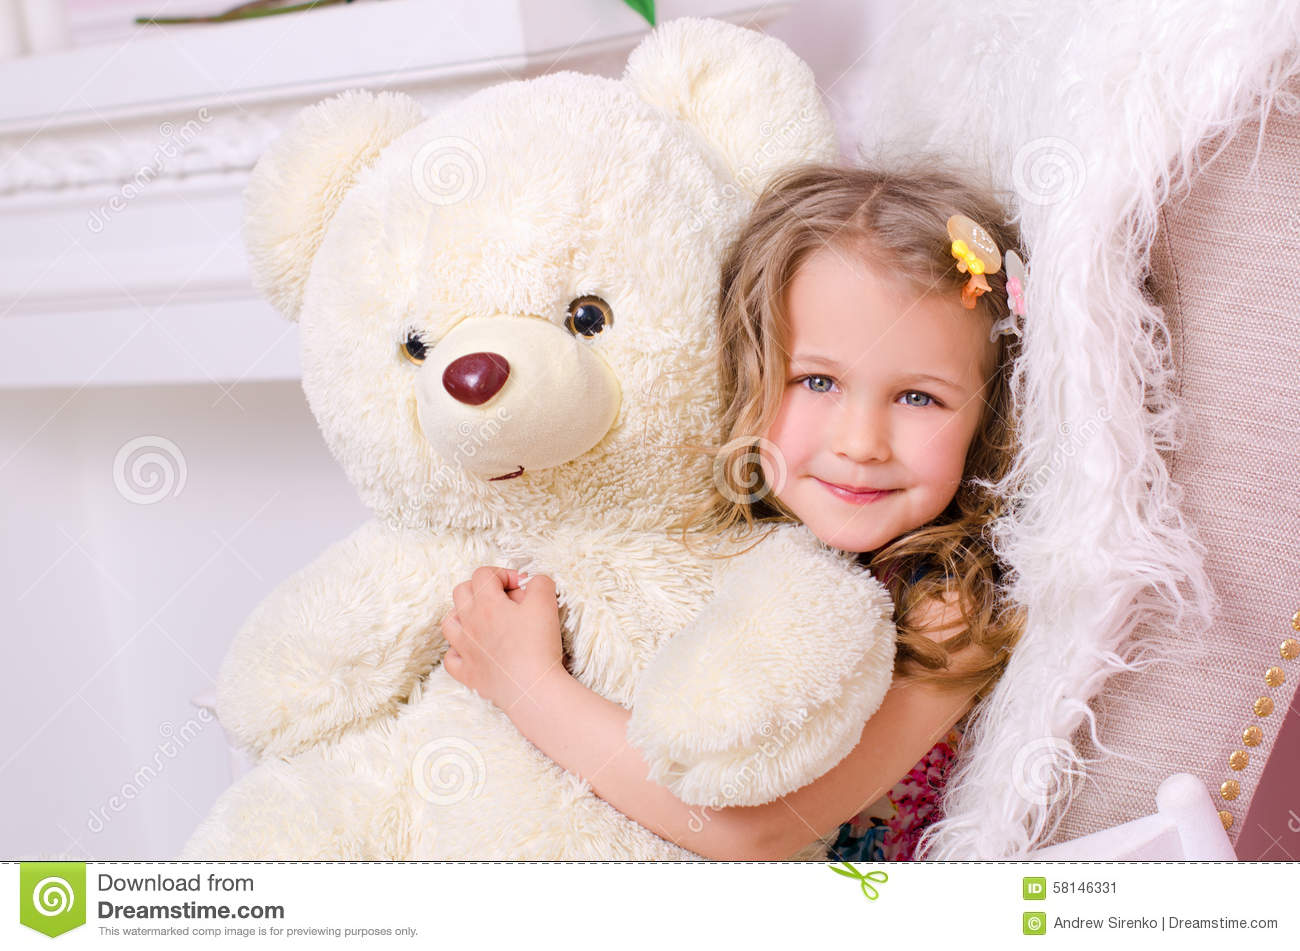 Little Cute Girl With Big White Teddy Bear Stock Photo ...Little Girl With Teddy Bear Black And White